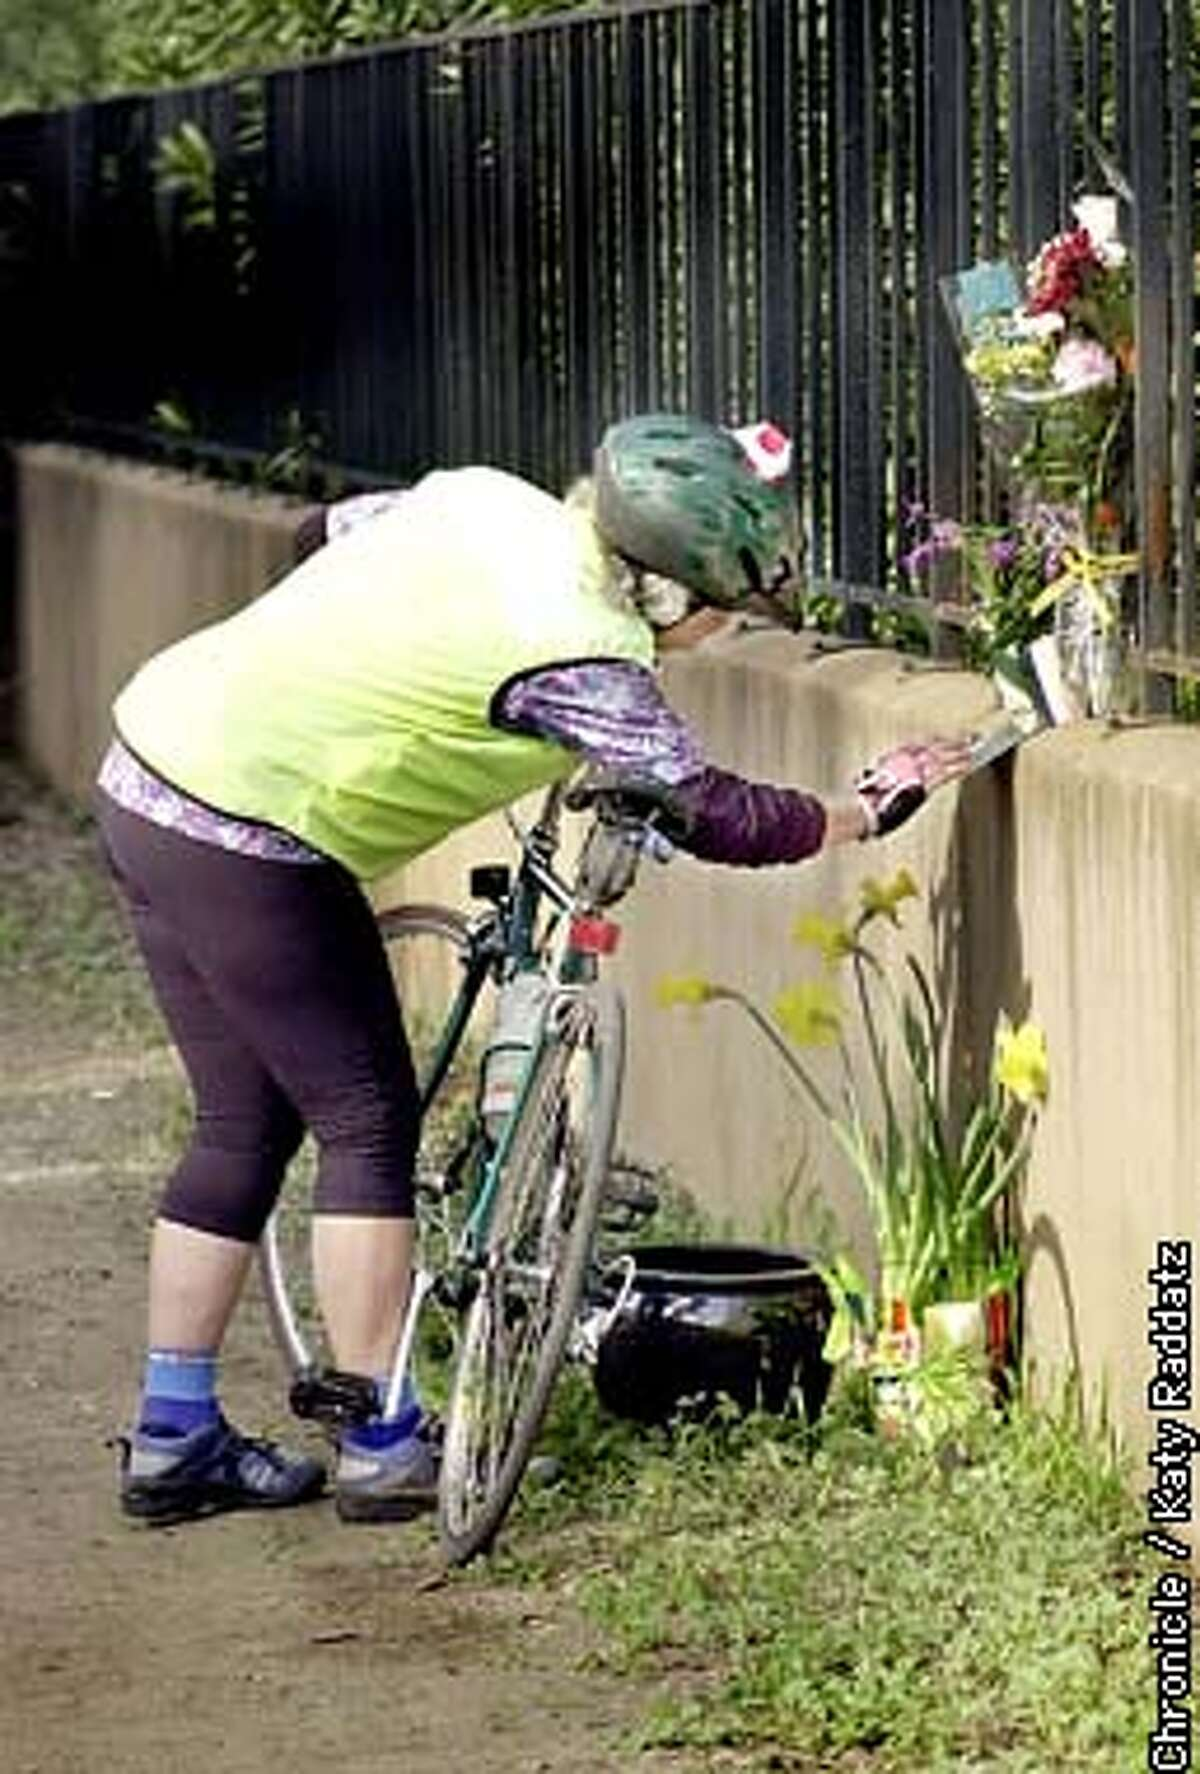 PHOTO BY KATY RADDATZ--THE CHRONICLE Follow up story to the hit-and-run death of Amy Malzbender of Palo Alto. SHOWN: Vivian Wray pauses on her bicycle to read the heartrending note left by friends of Amy on the impromptu memorial on Miranda Ave. in Palo Alto.